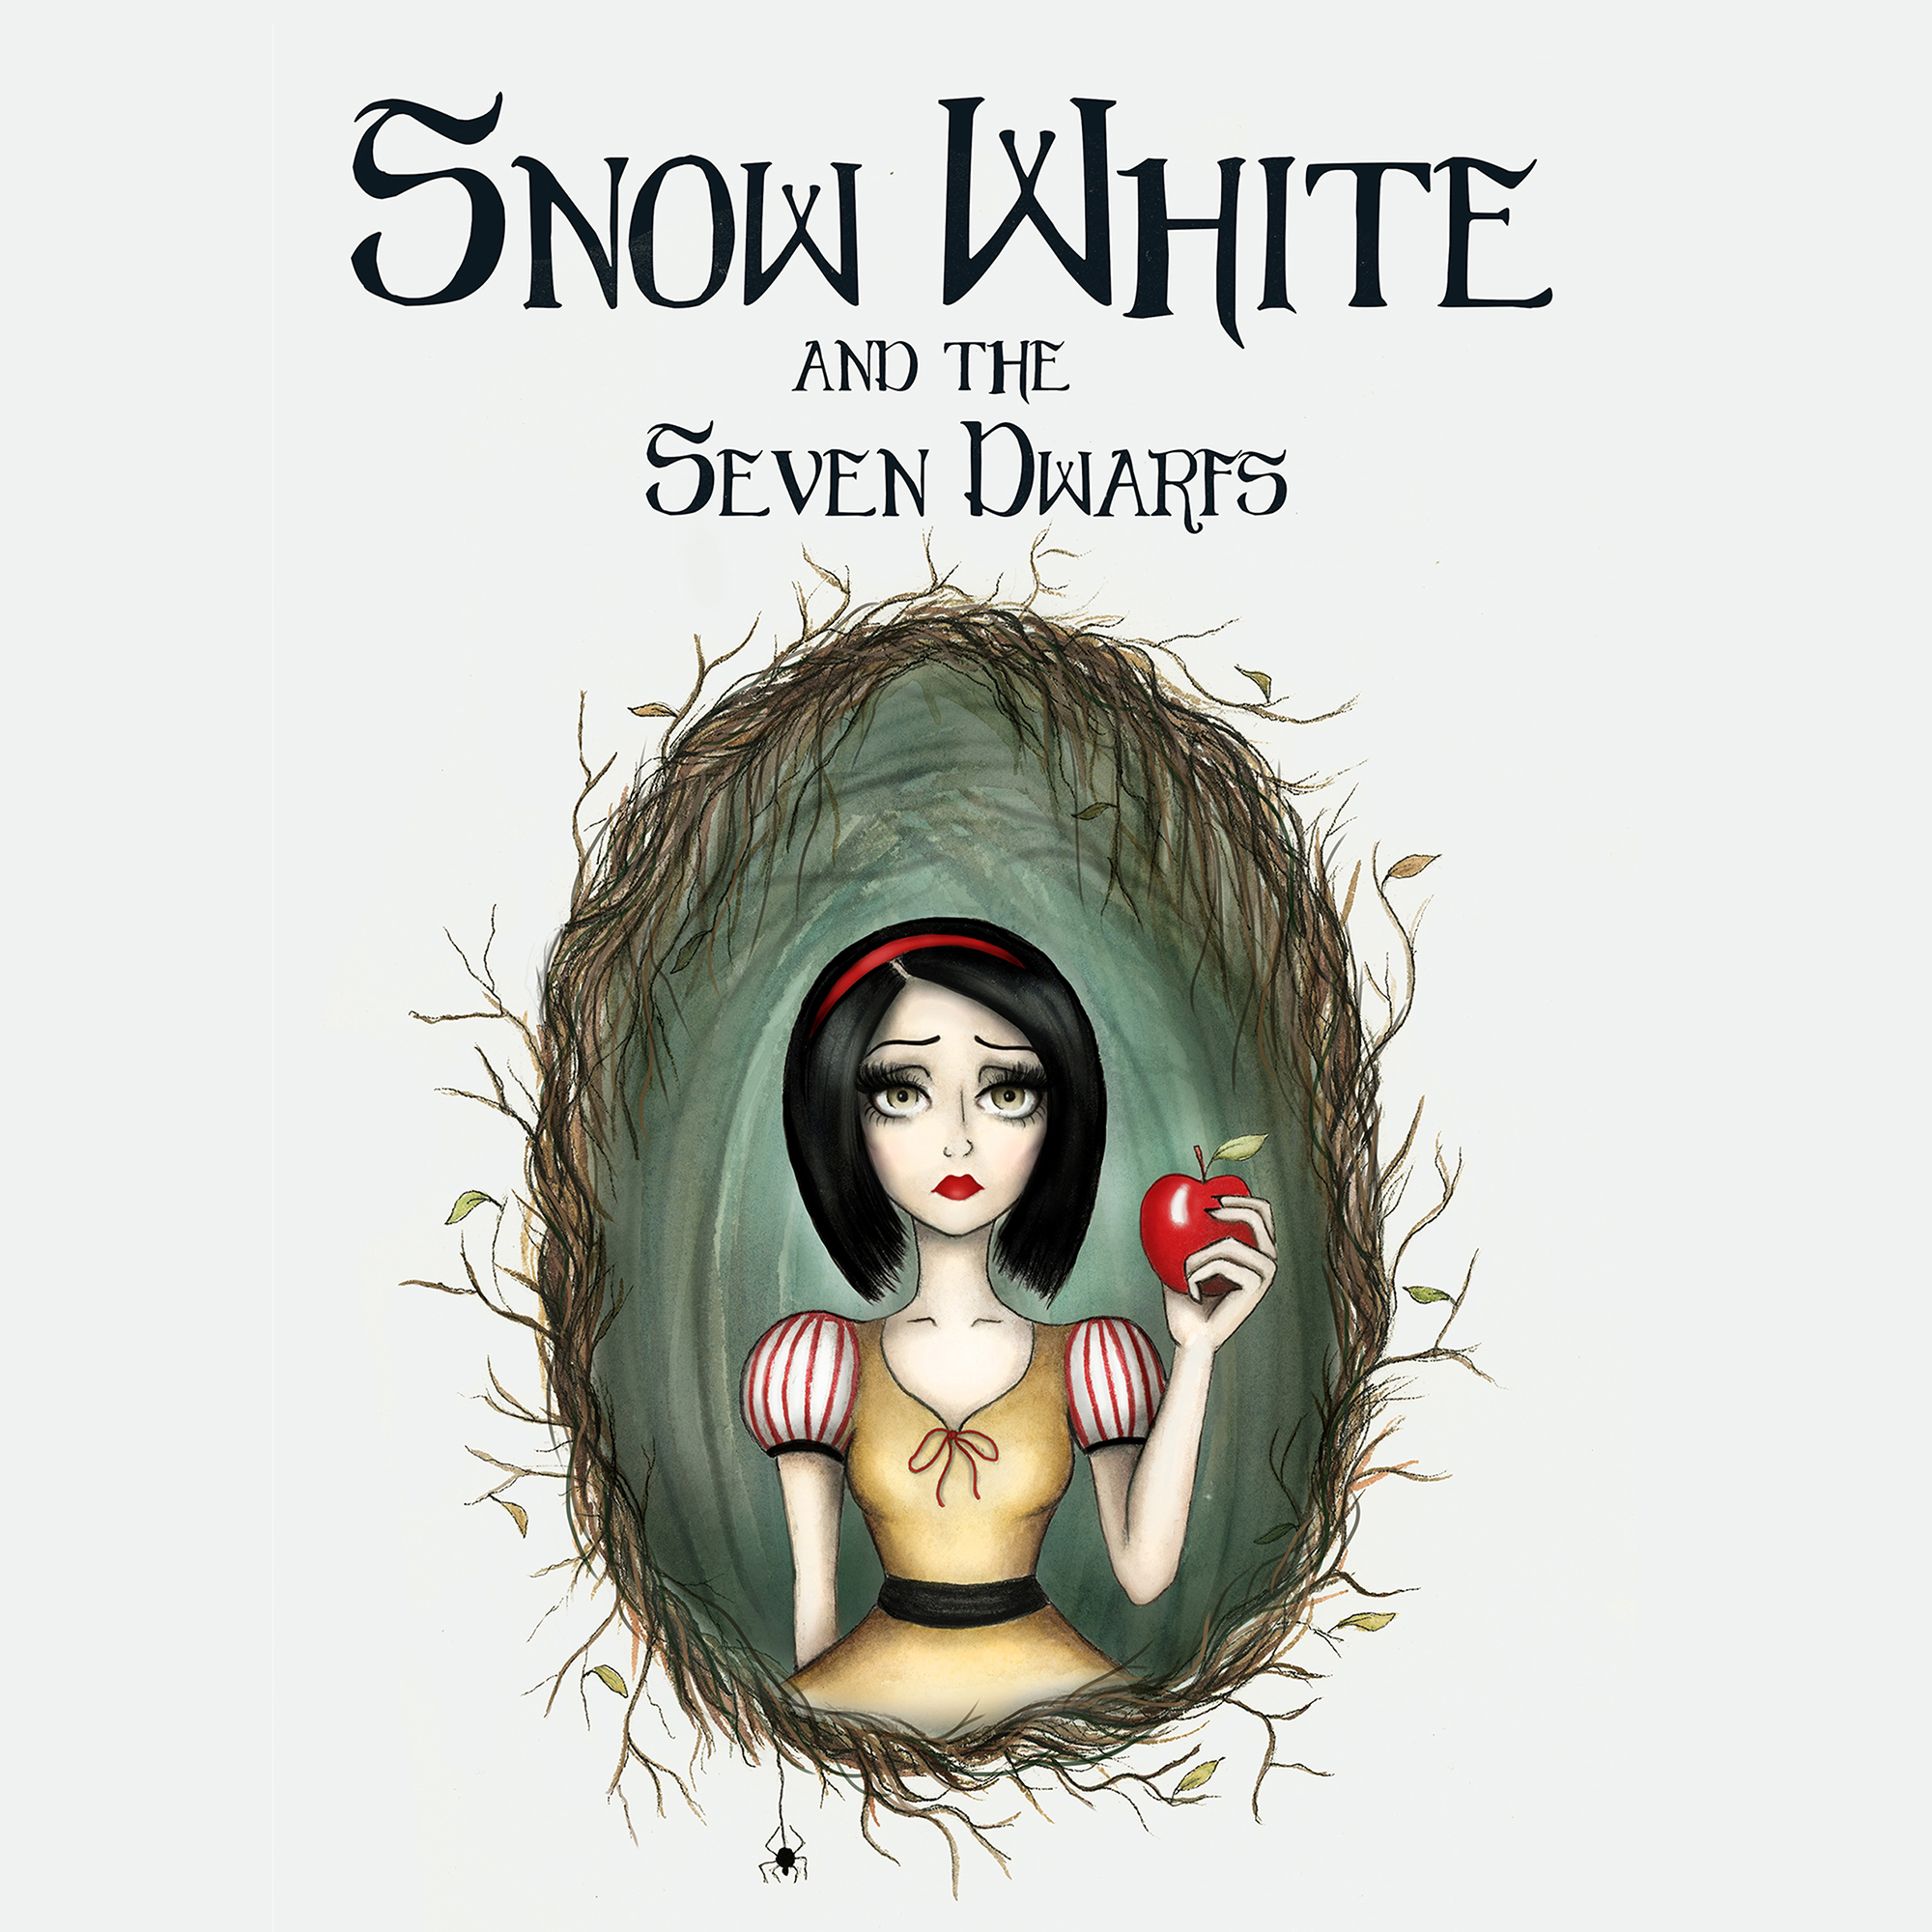 Snow White Book Cover: Book cover recreation of Snow White. Watercolor, ink, and digital media.